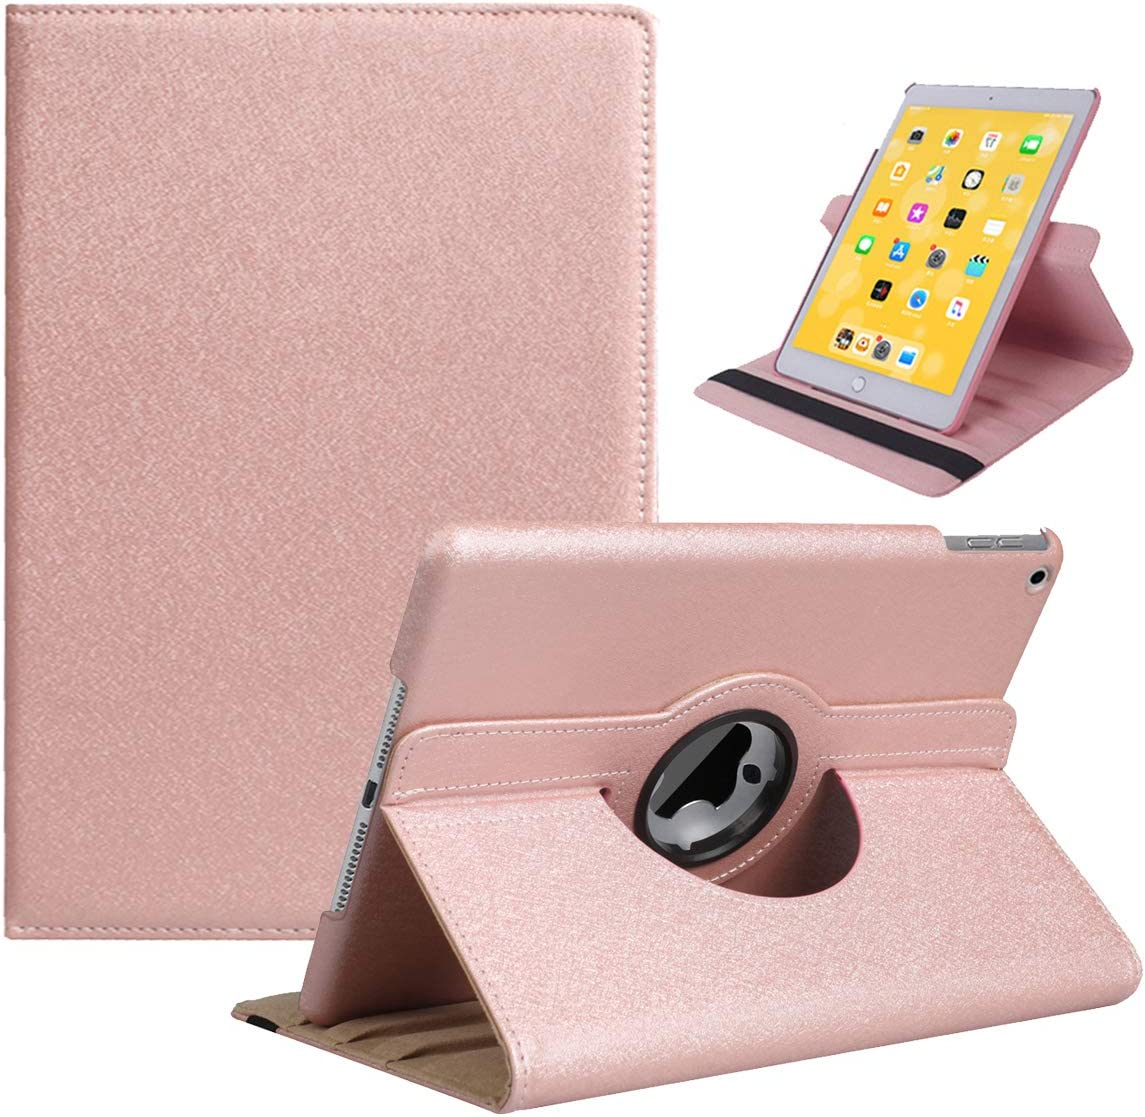 LRCXL New iPad 8th Generation Case 2020, iPad 7th Generation Case 2019 - 360 Degree Rotating Stand Protective Cover with Auto Sleep Wake for Apple New iPad 10.2